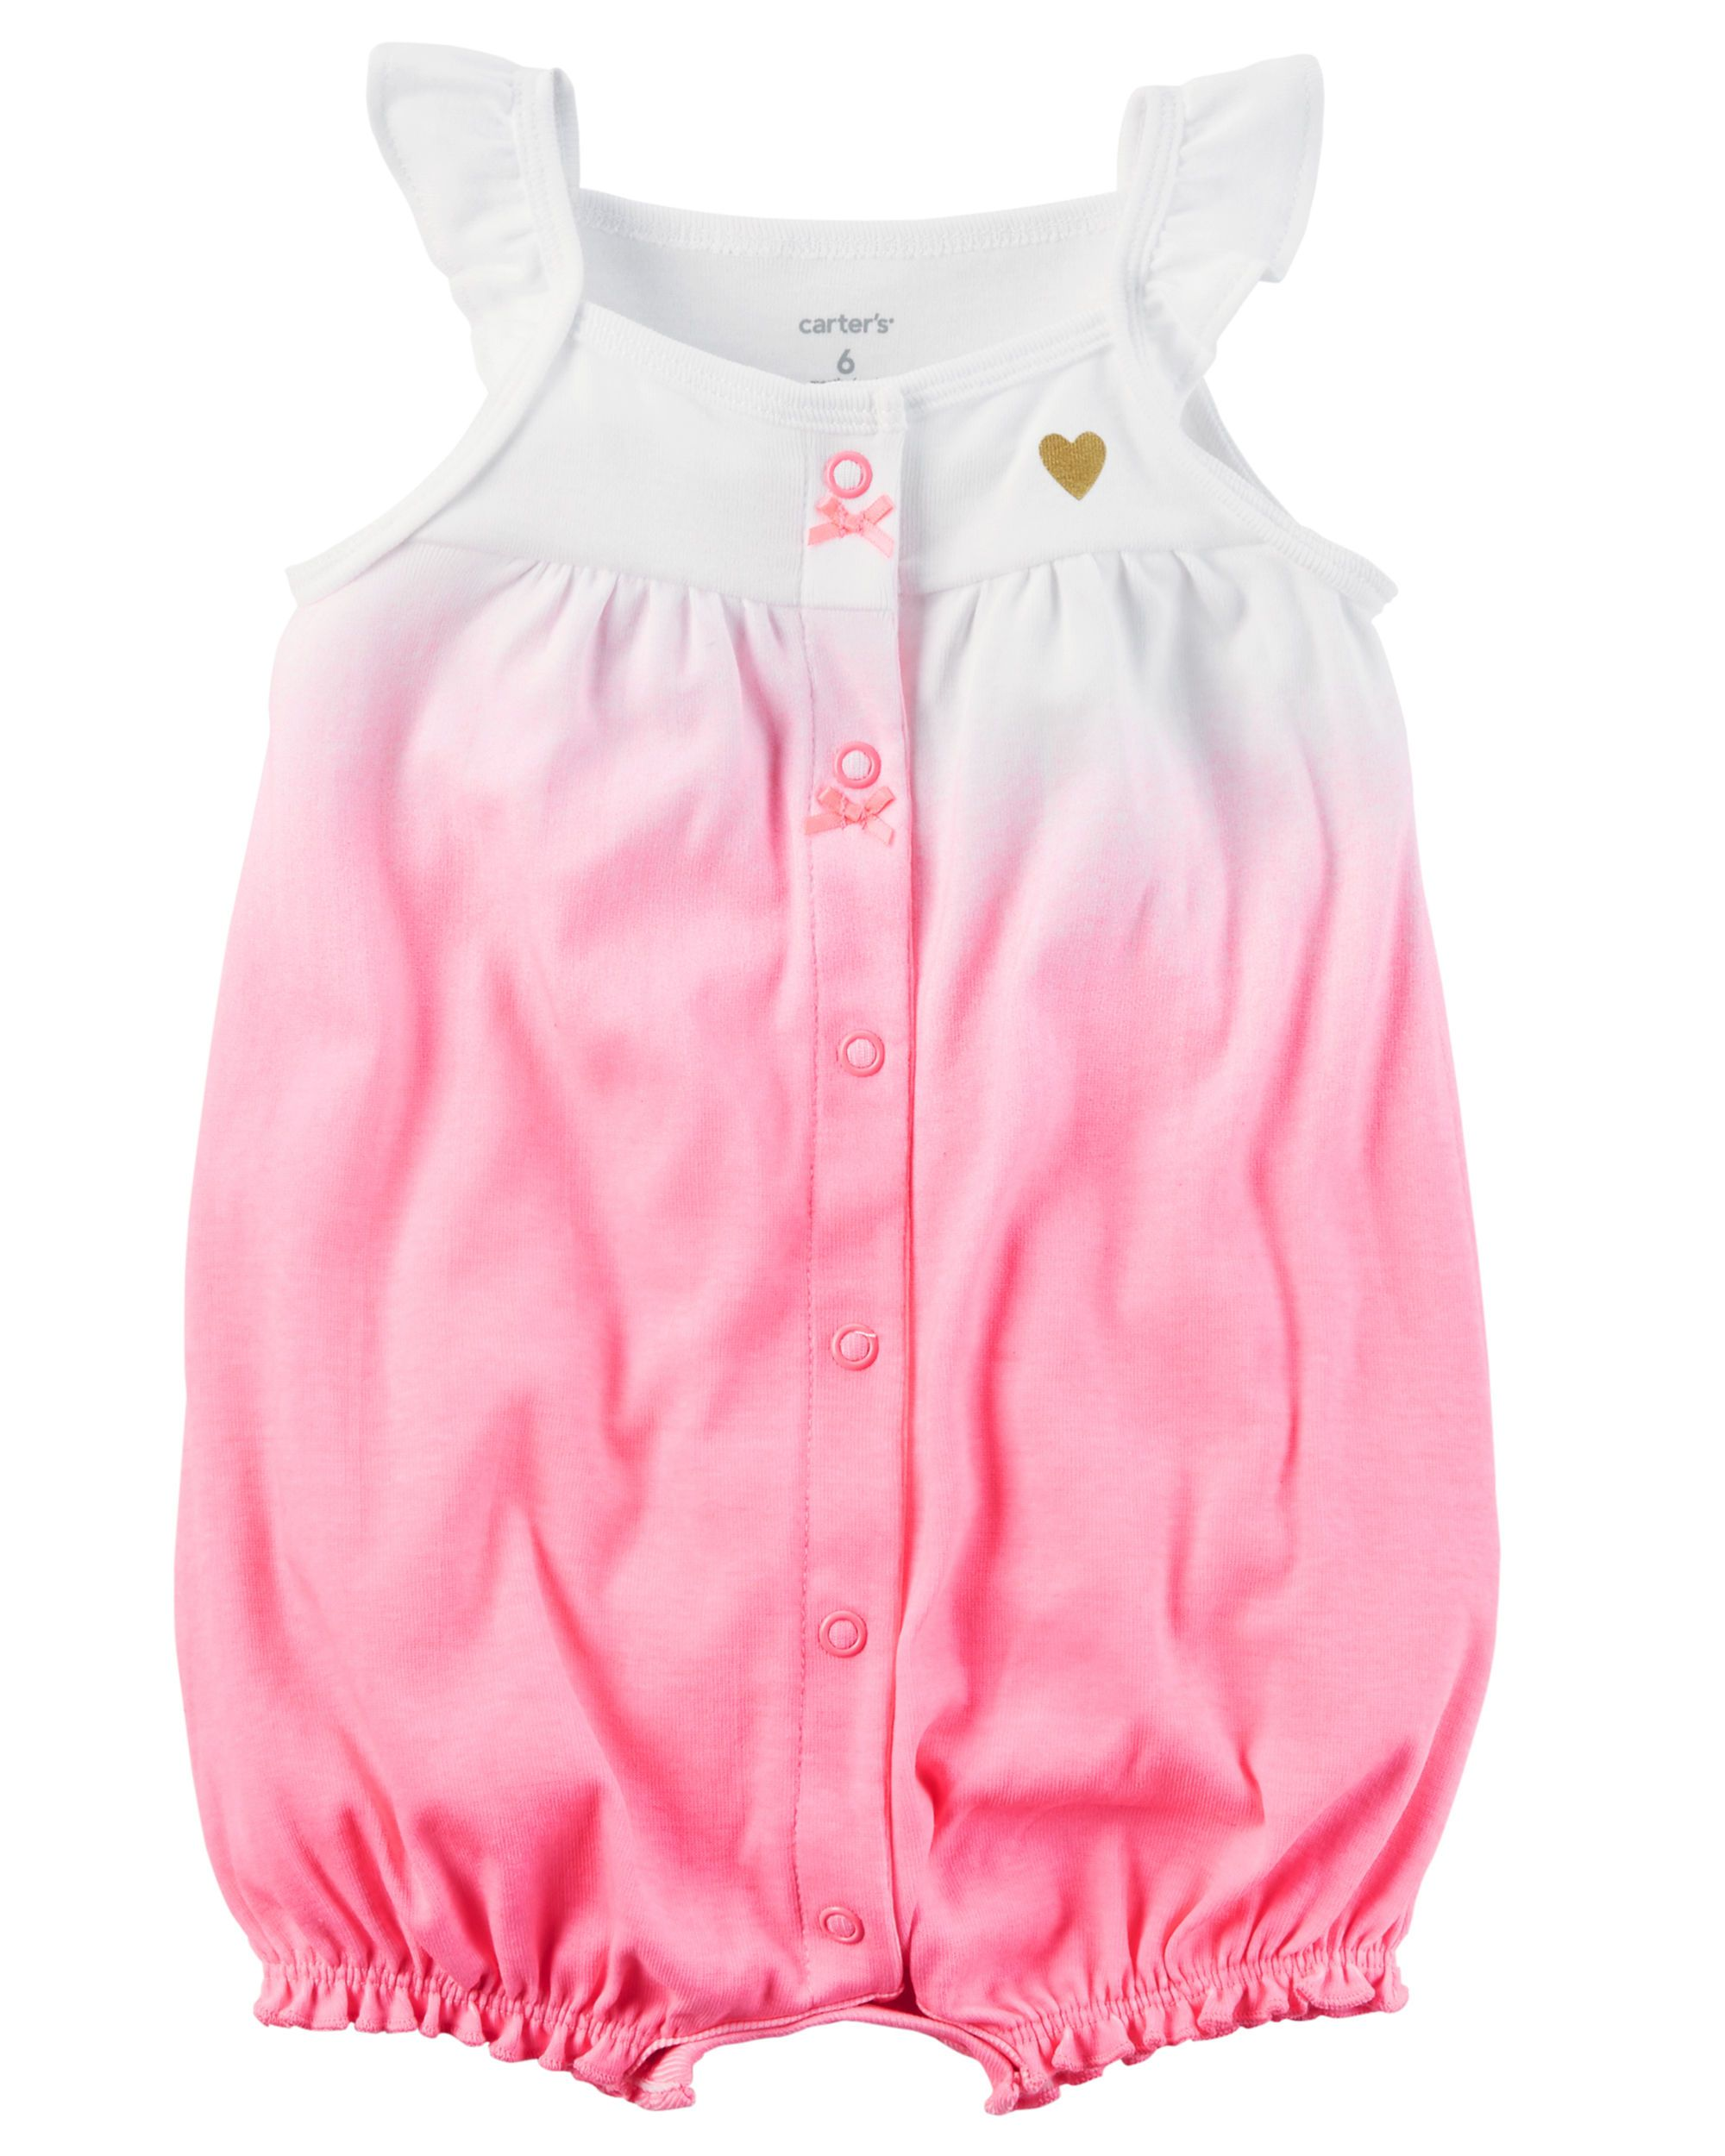 cd2e8e173 Baby Girl Snap-Up Cotton Romper from Carters.com. Shop clothing ...